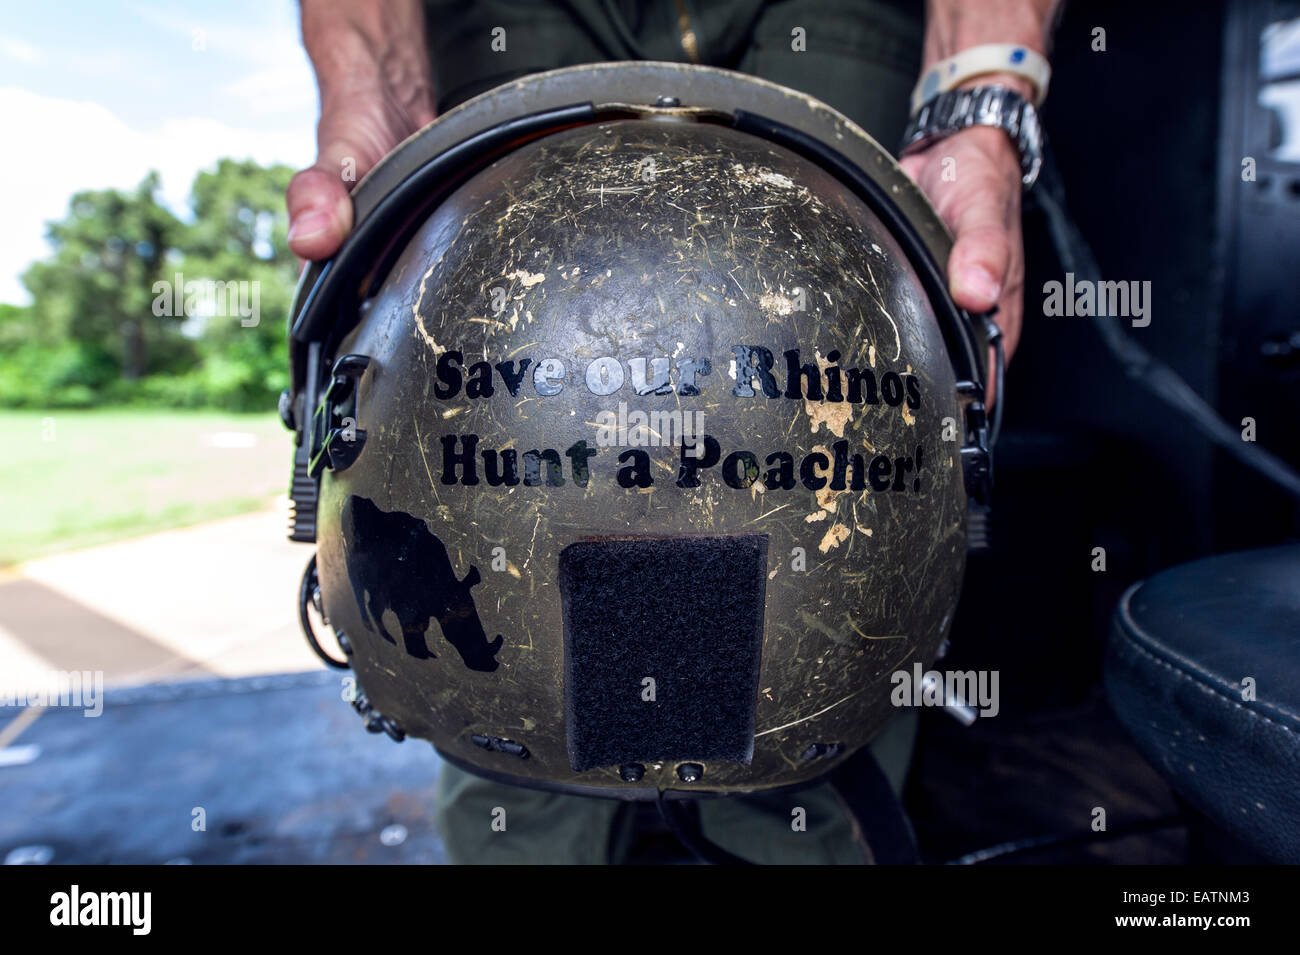 Airforce helmet with Rhinoceros anti-poaching slogan on the back. - Stock Image